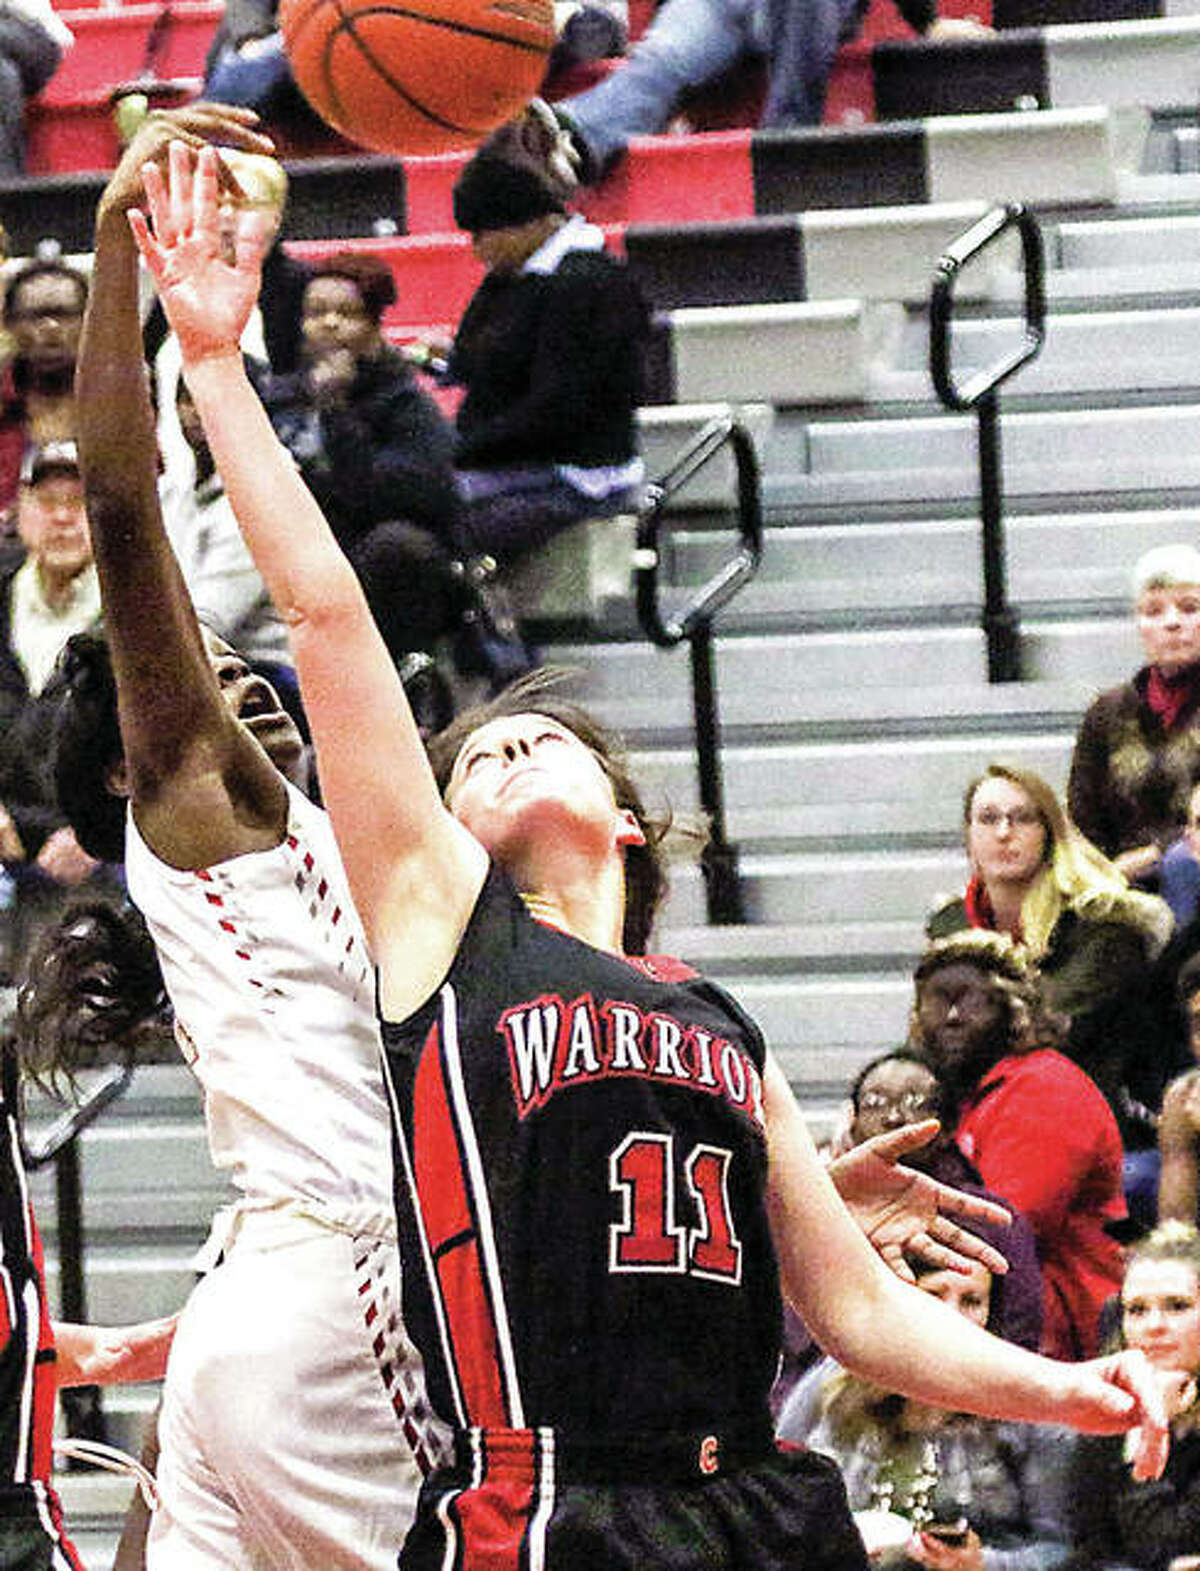 Emily McBride of Calhoun (11) led the Warriors with 14 points in 1 49-44 loss to Brown County Wednesday night in Mount Sterling. She is shown in action earlier this season.